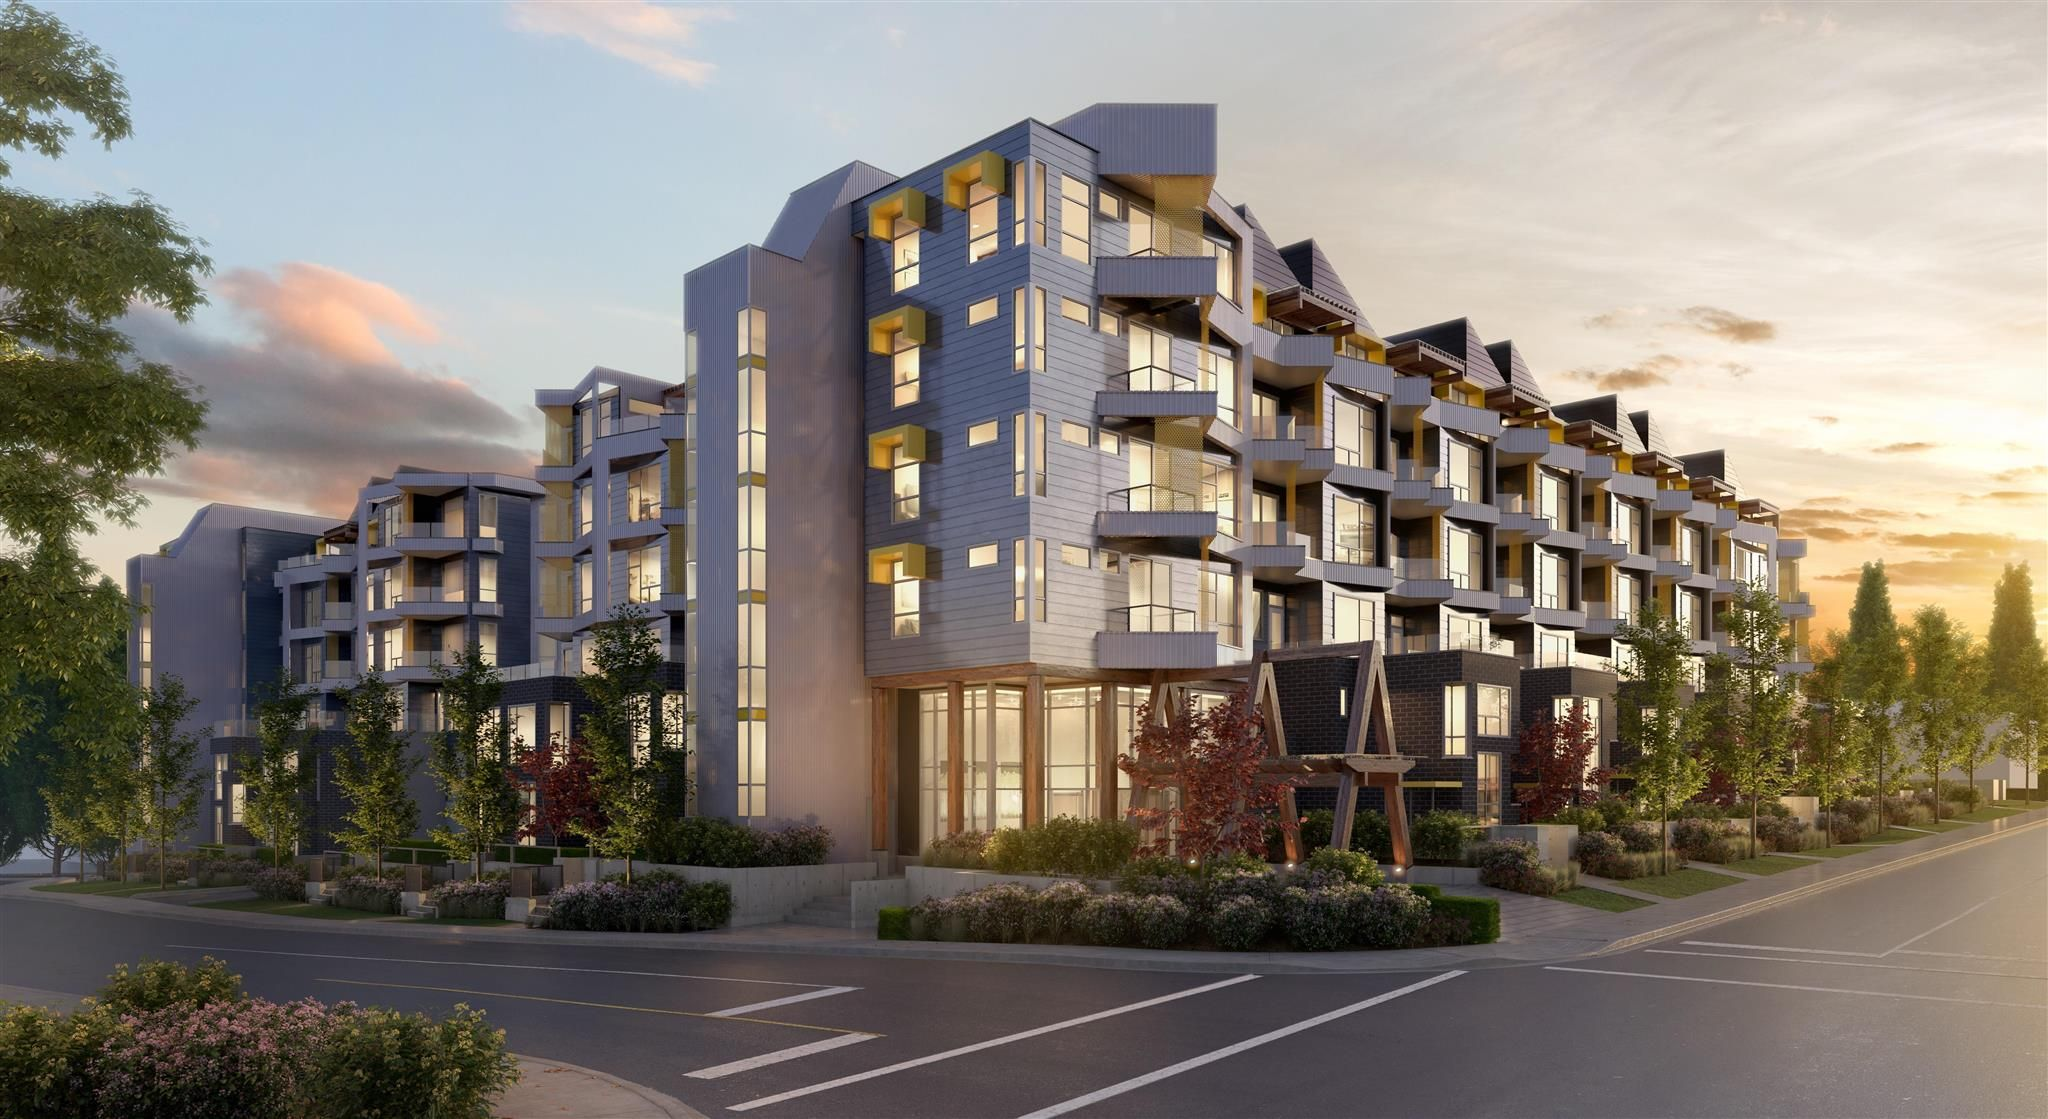 """Main Photo: 303 32838 LANDEAU Place in Abbotsford: Central Abbotsford Condo for sale in """"Court"""" : MLS®# R2607218"""